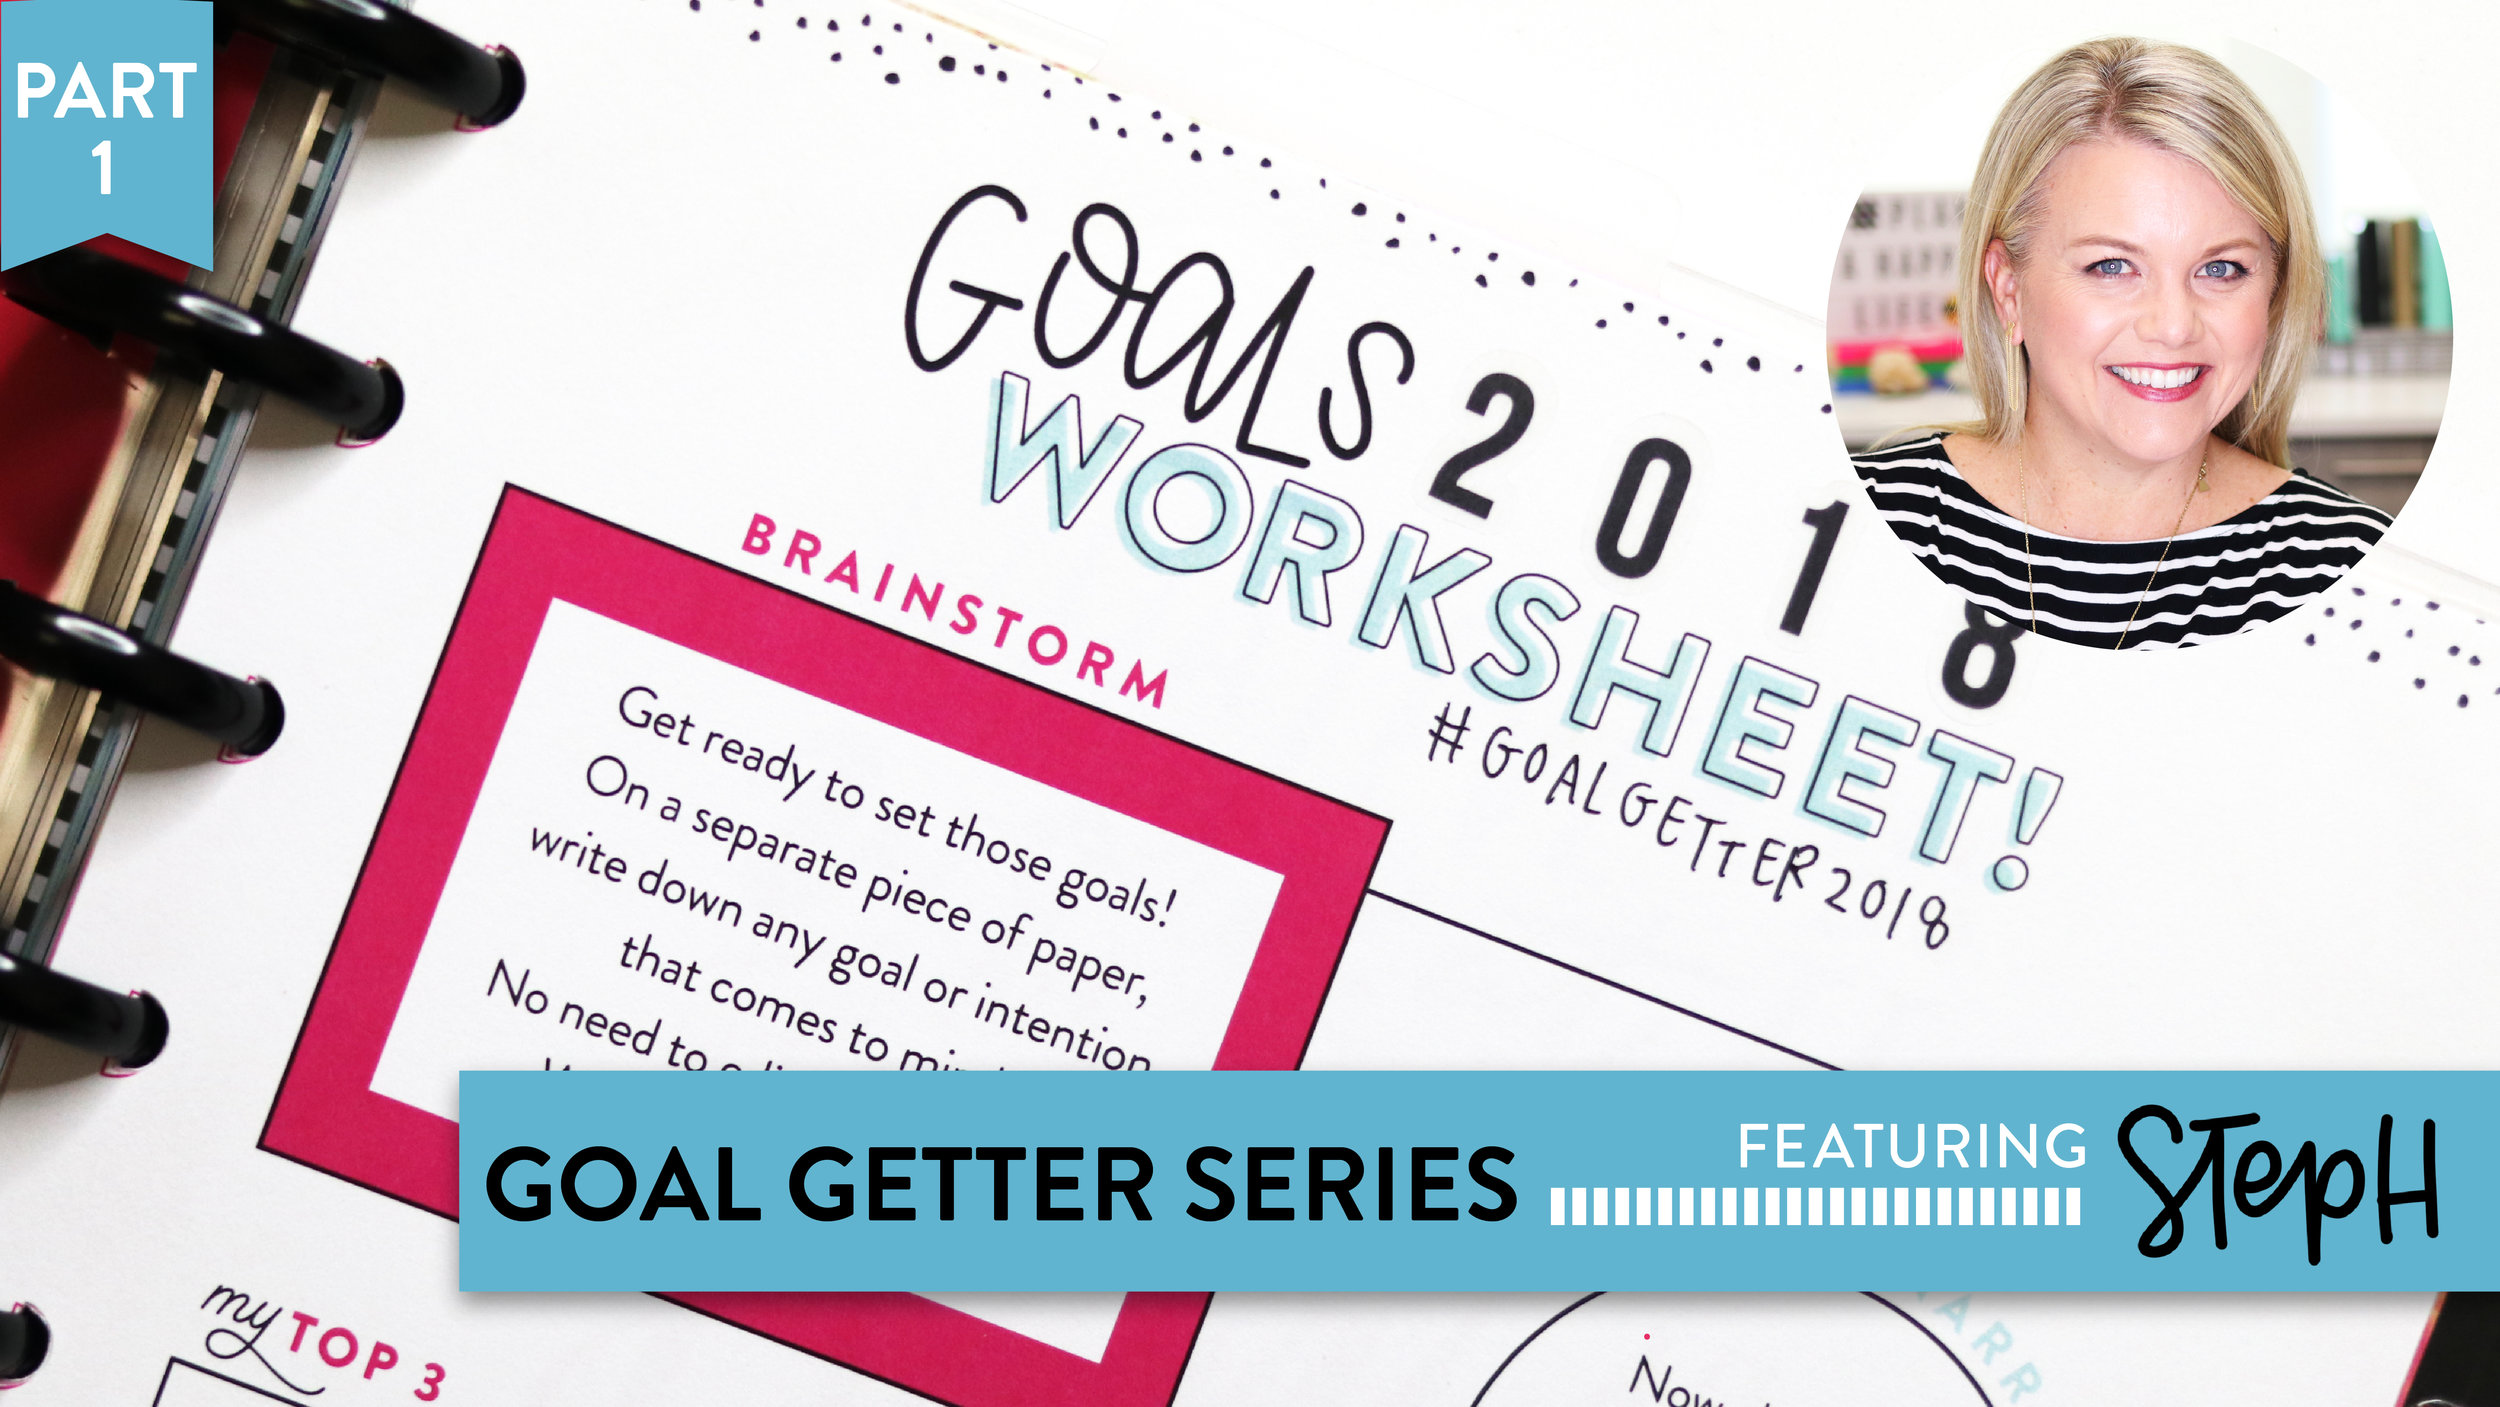 GOAL GETTER PART ONE